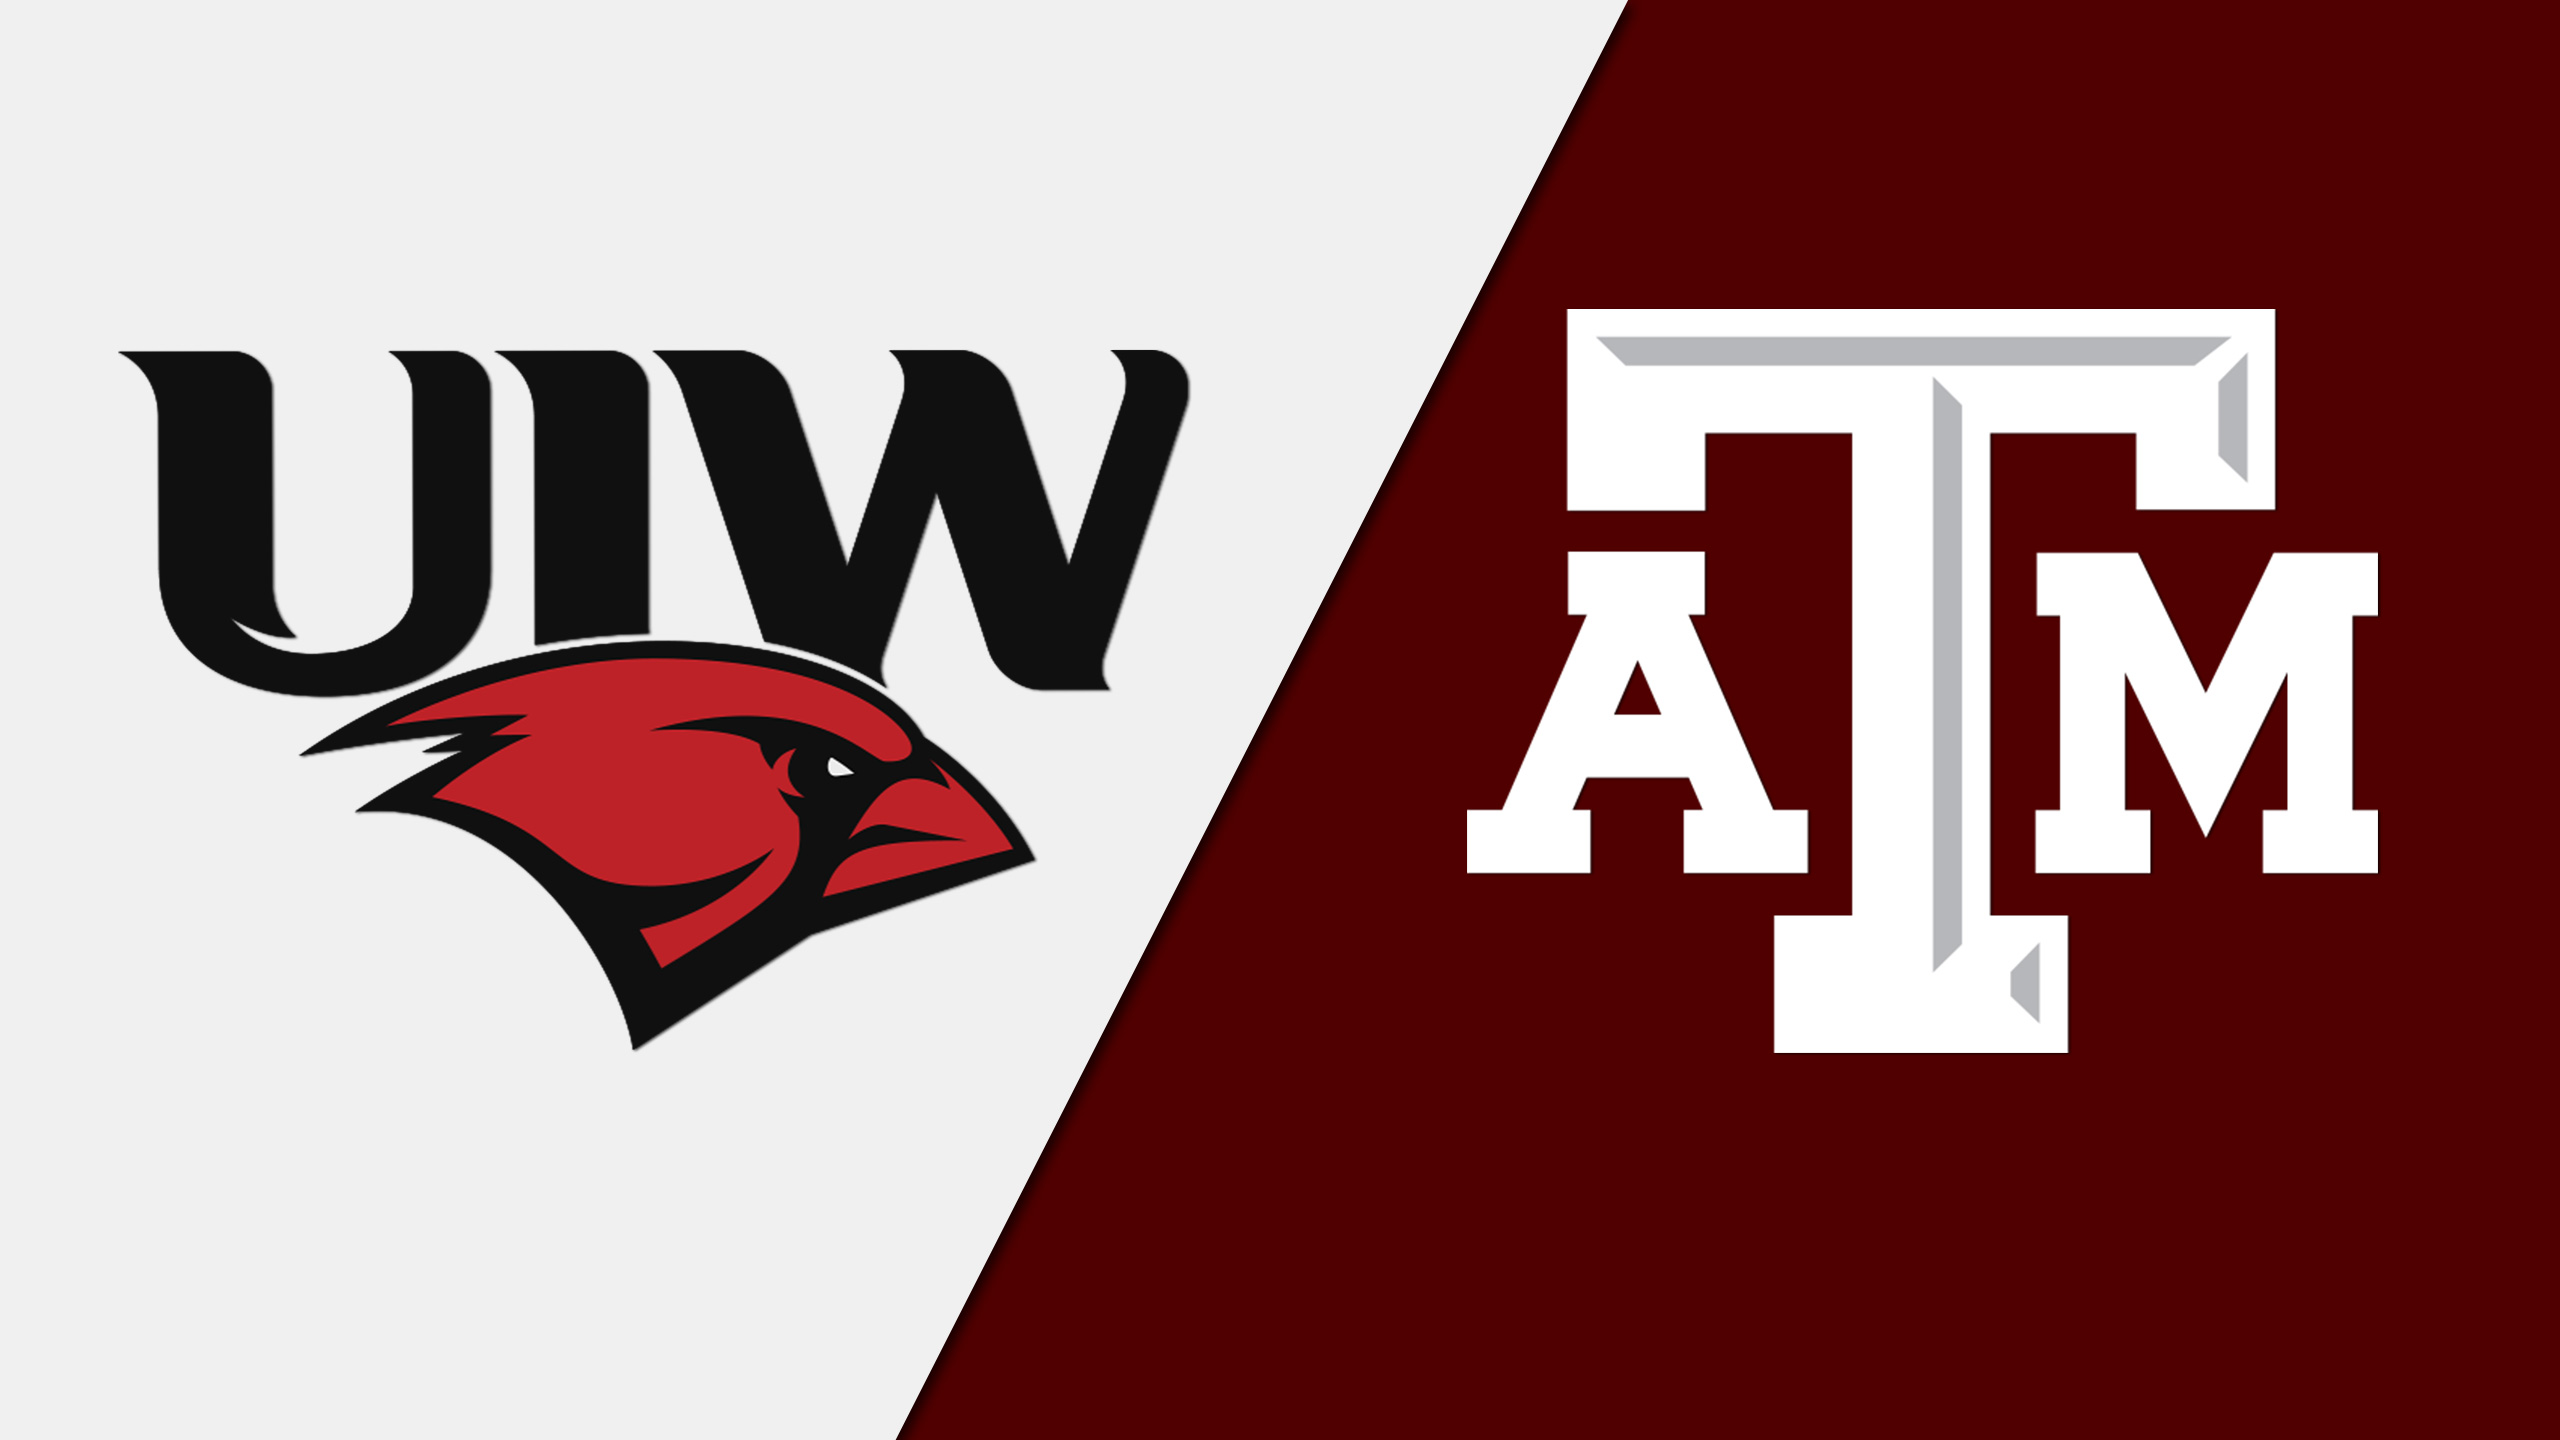 Incarnate Word vs. Texas A&M (Swimming & Diving)